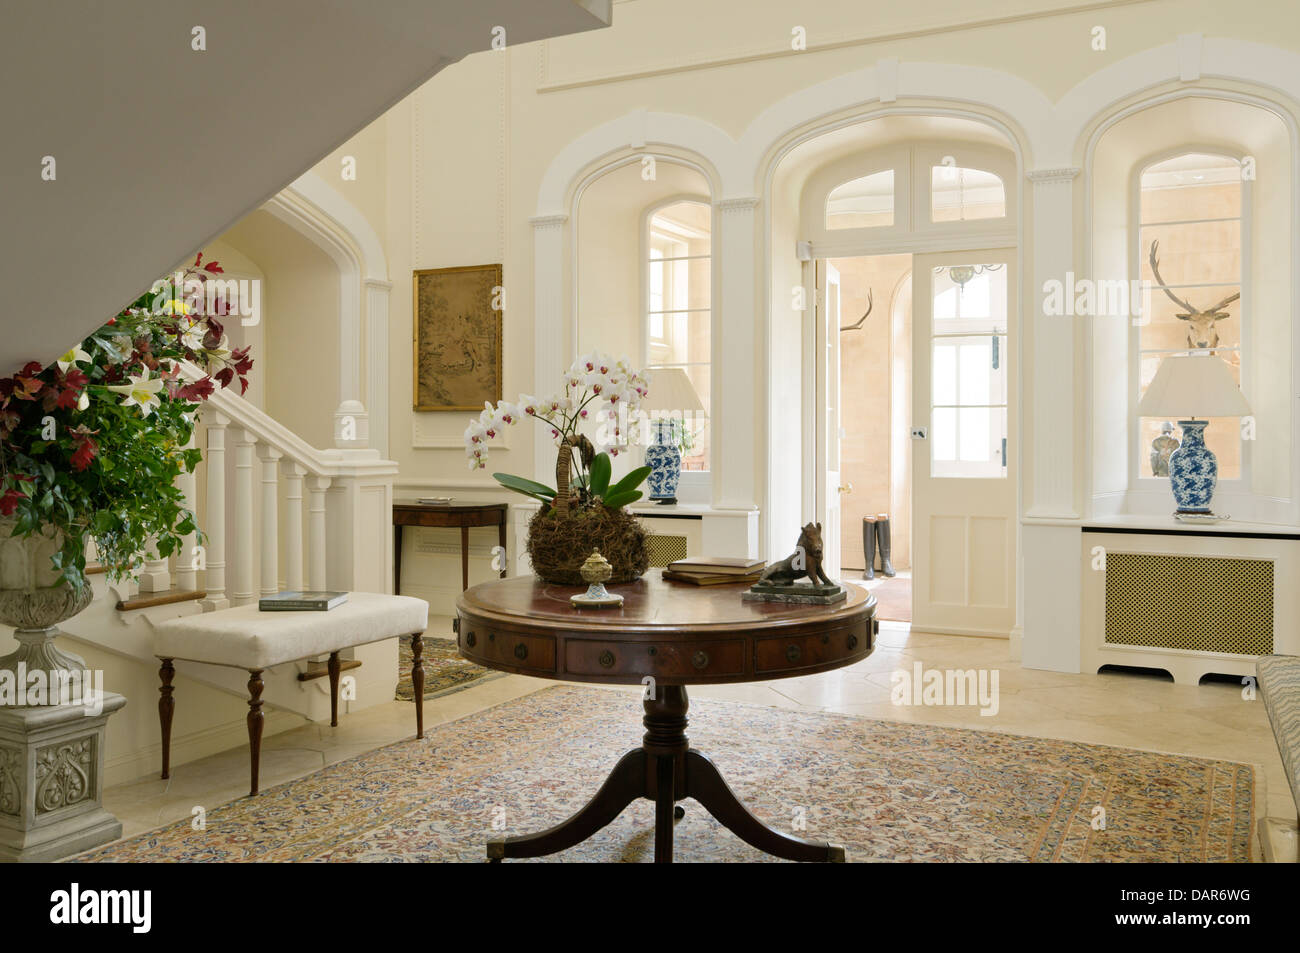 Antique Round Table In Entrance Hall Of English Country House Ampney Park,  17th Century English